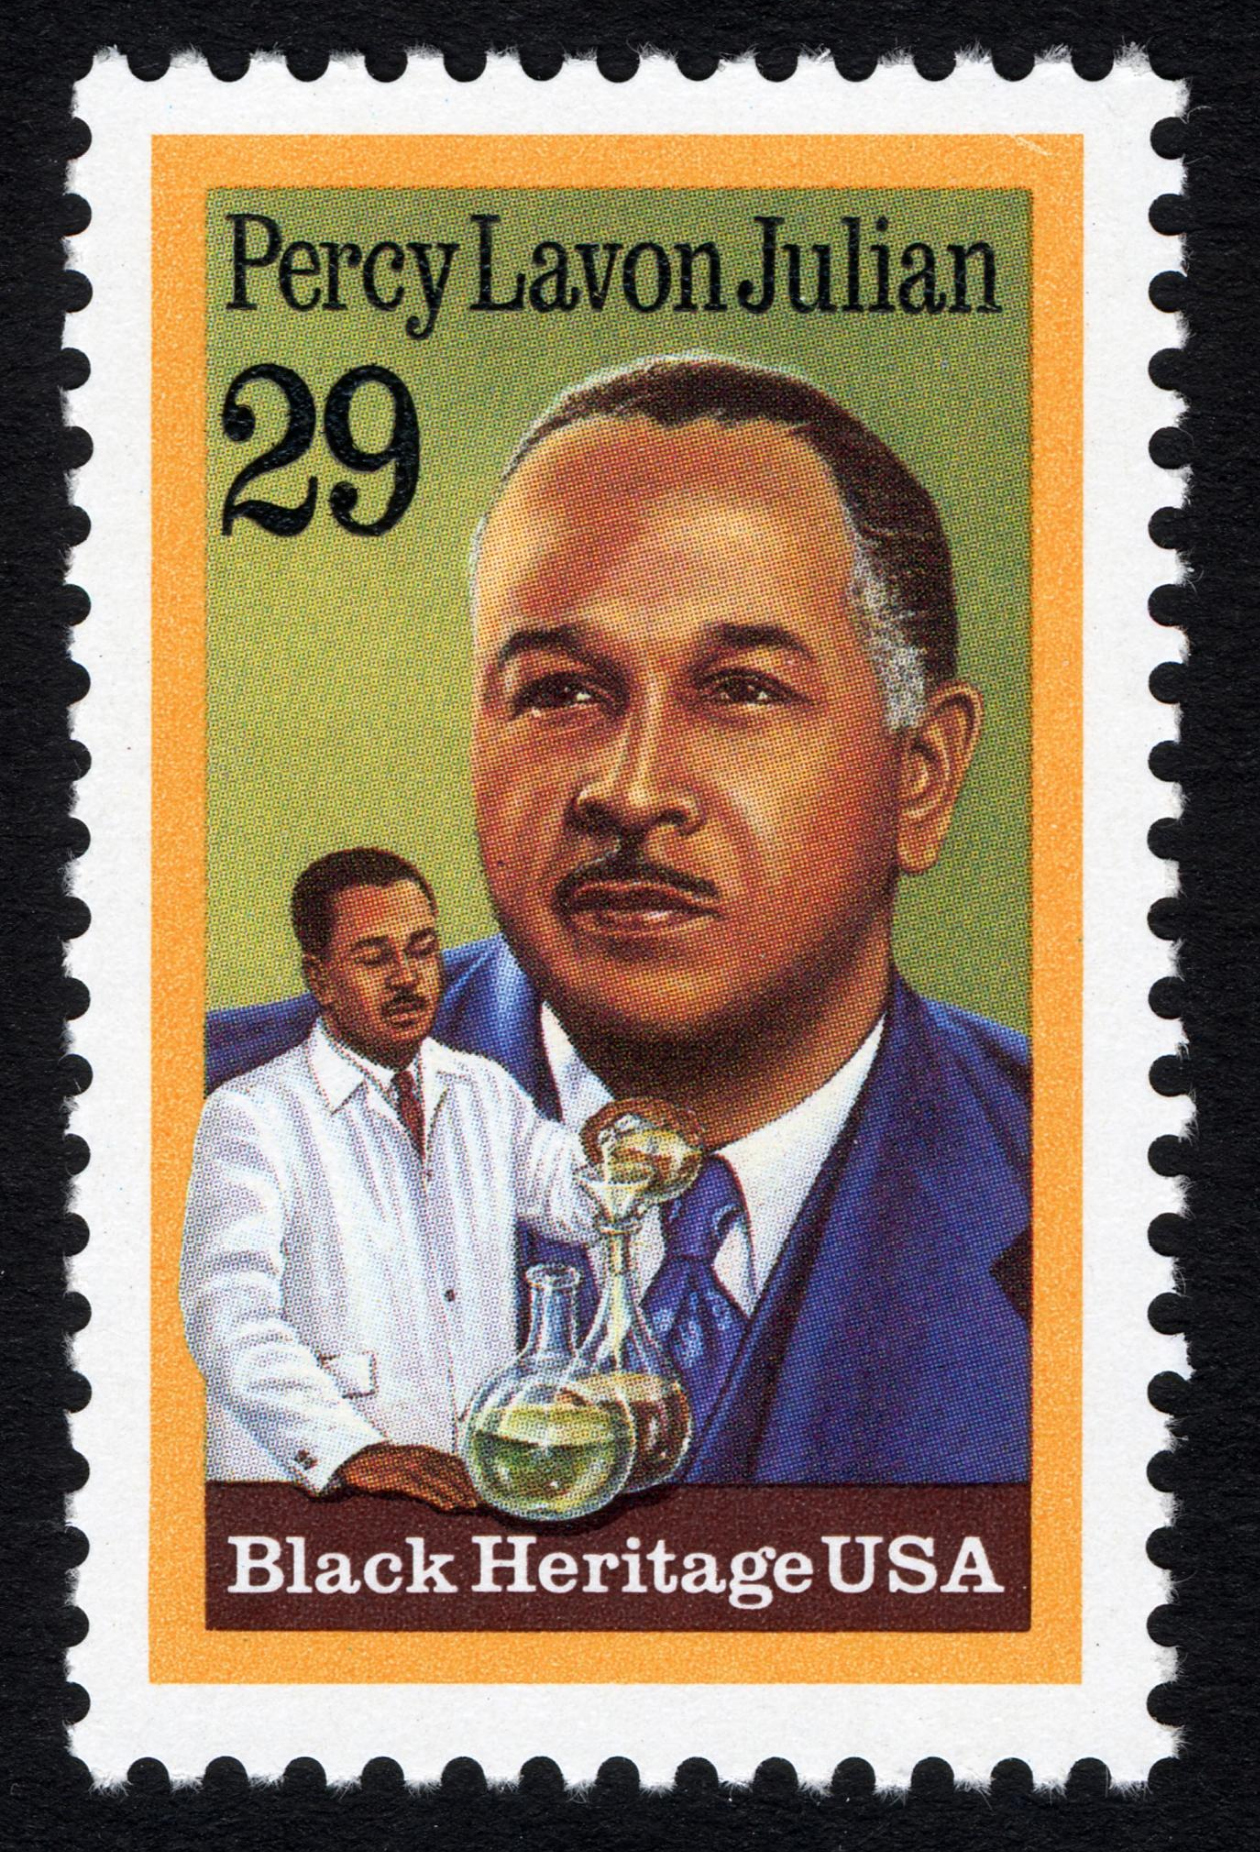 Postage stamp featuring a portrait of Percy Julian and an image of him working with laboratory equipment.